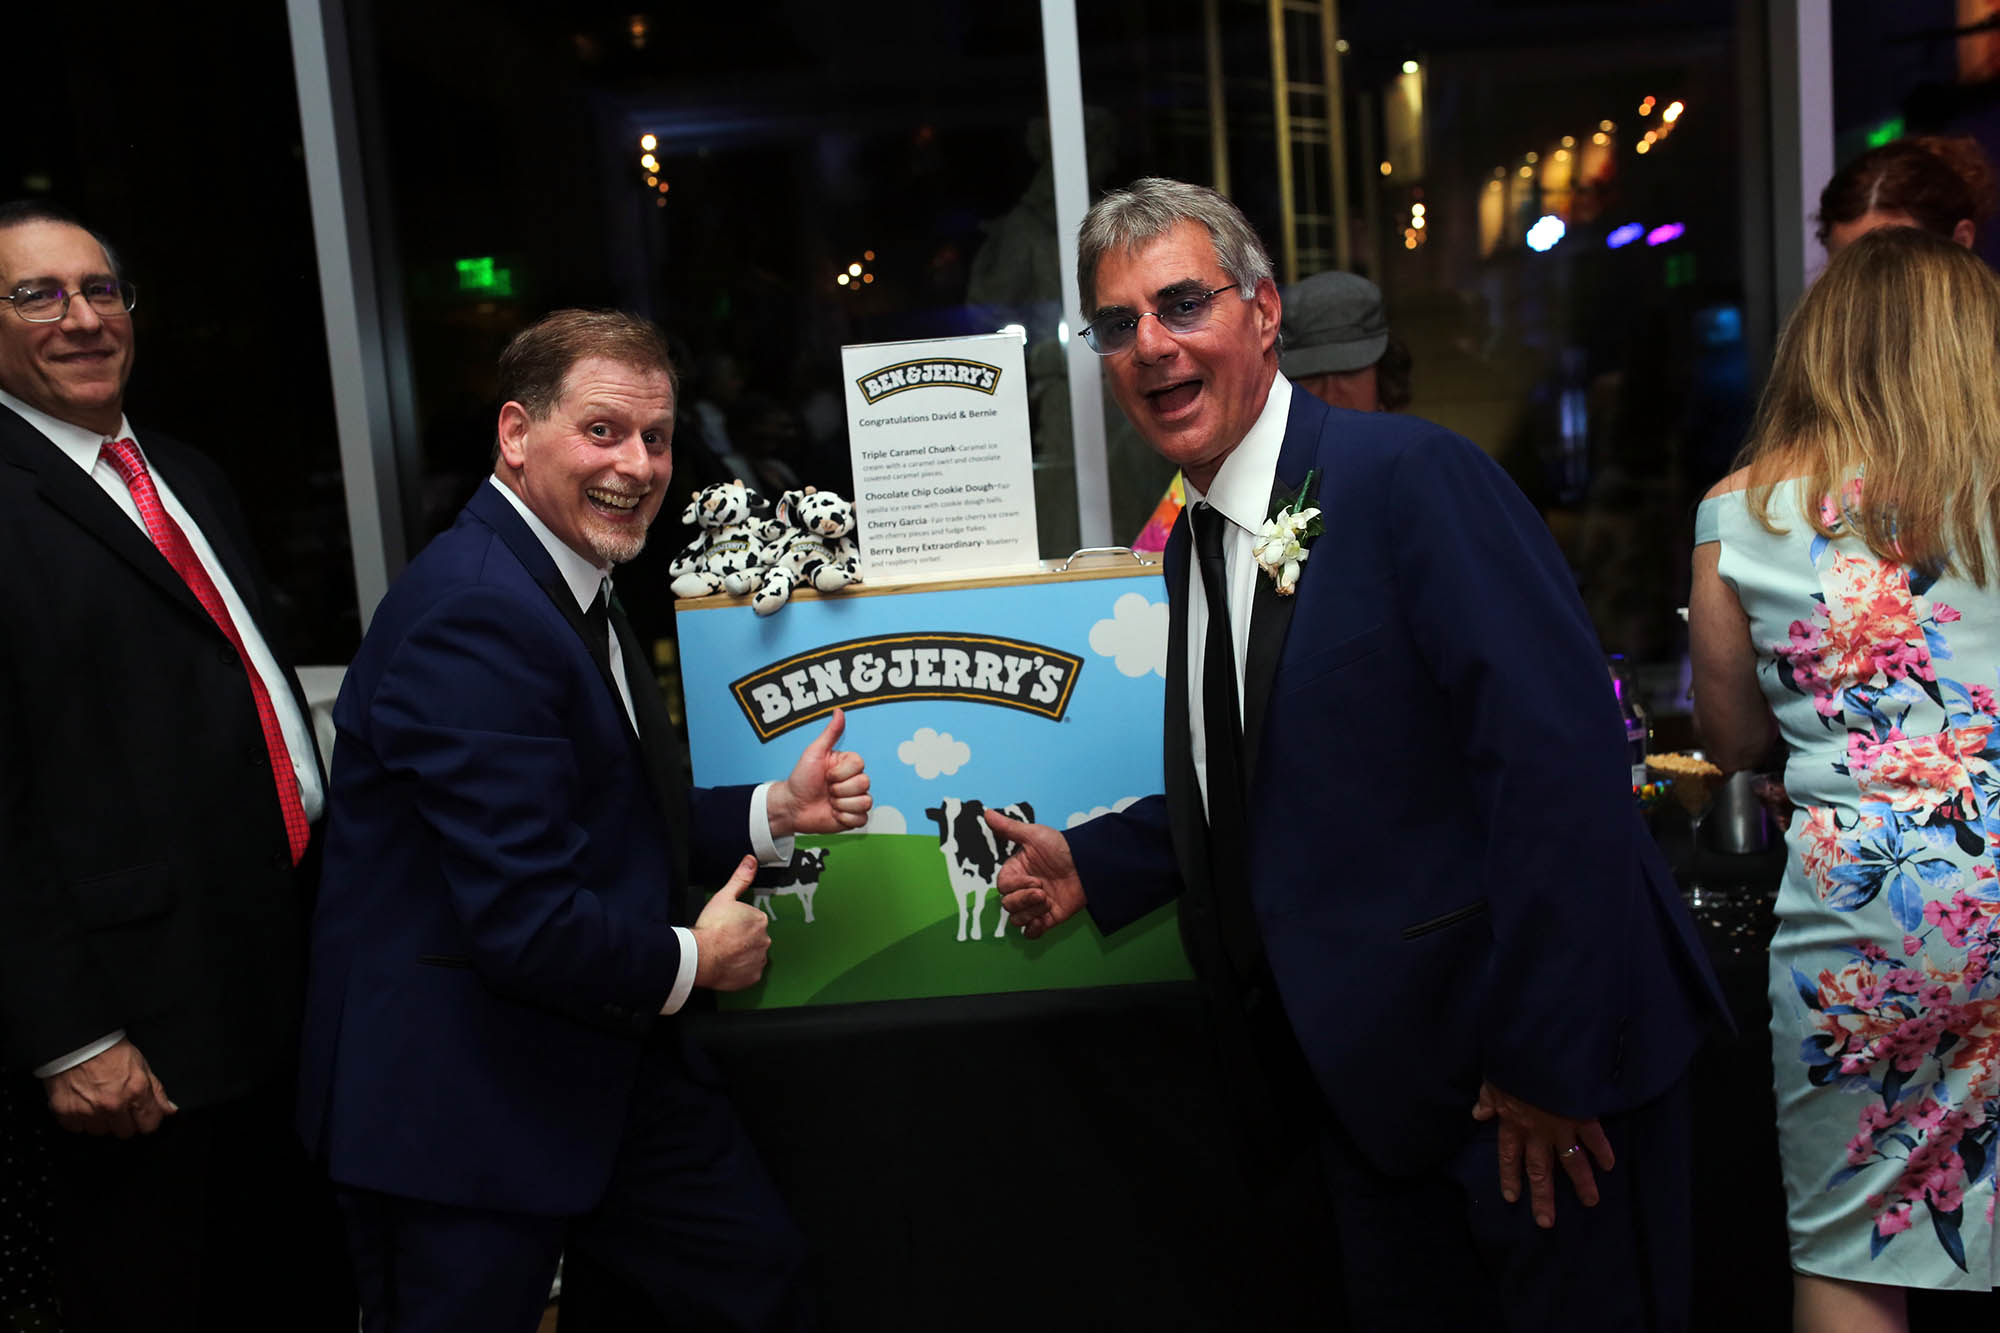 David runs a ben & jerry's in LA so he surprised his guests with an Ice Cream bar to wrap up the evening, yum!!